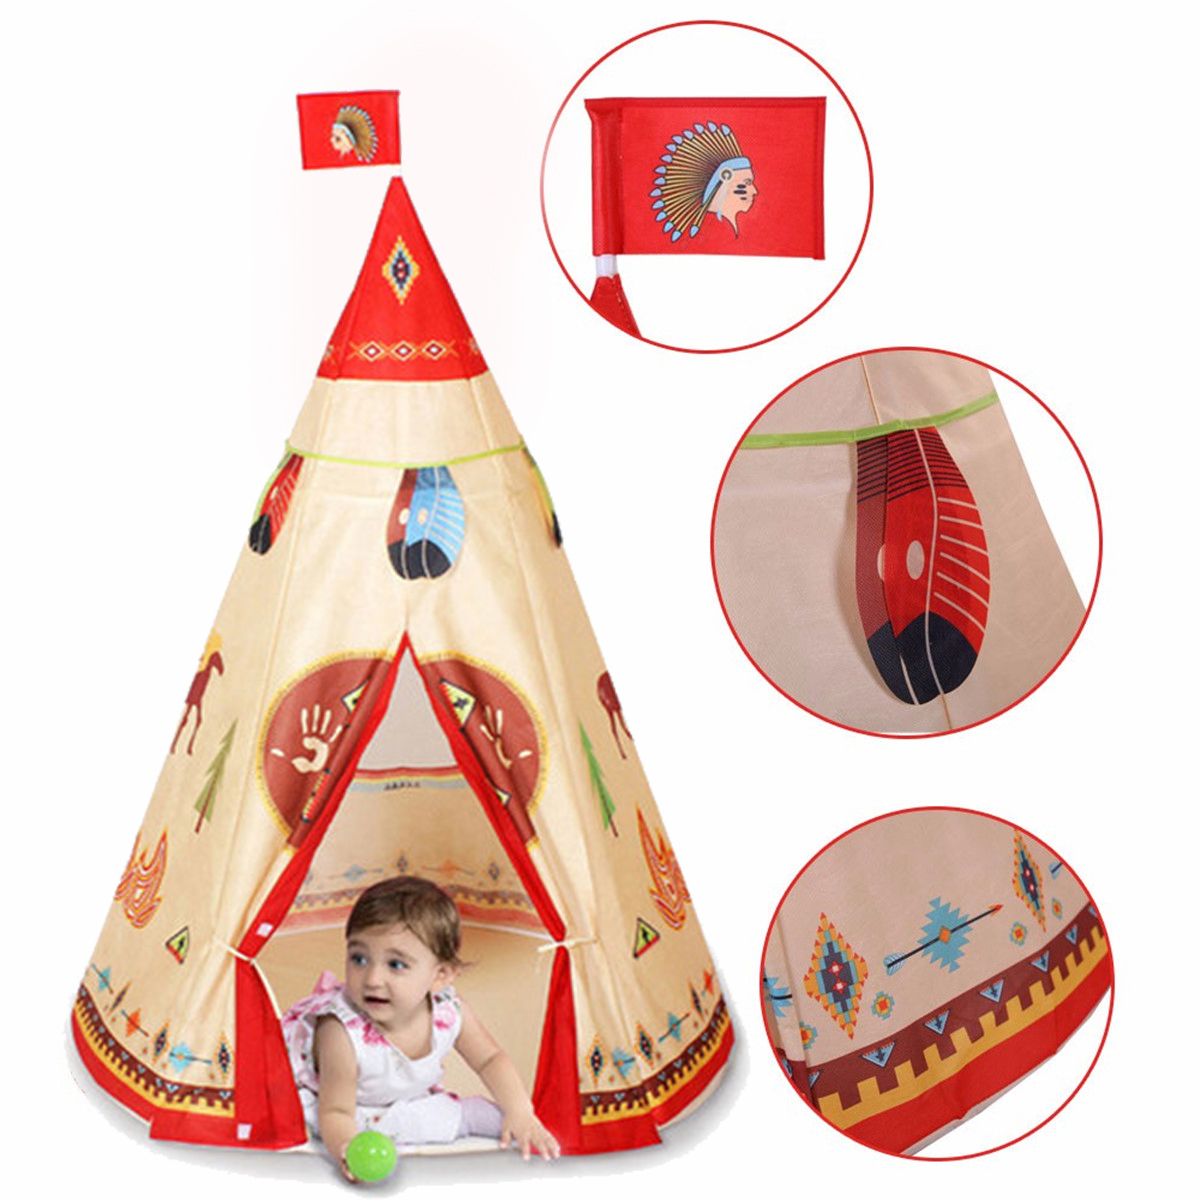 Indoor Indian Playhouse Toy Teepee Play Tent Gift for Kids Toddlers Canvas Teepee With Carry Bag